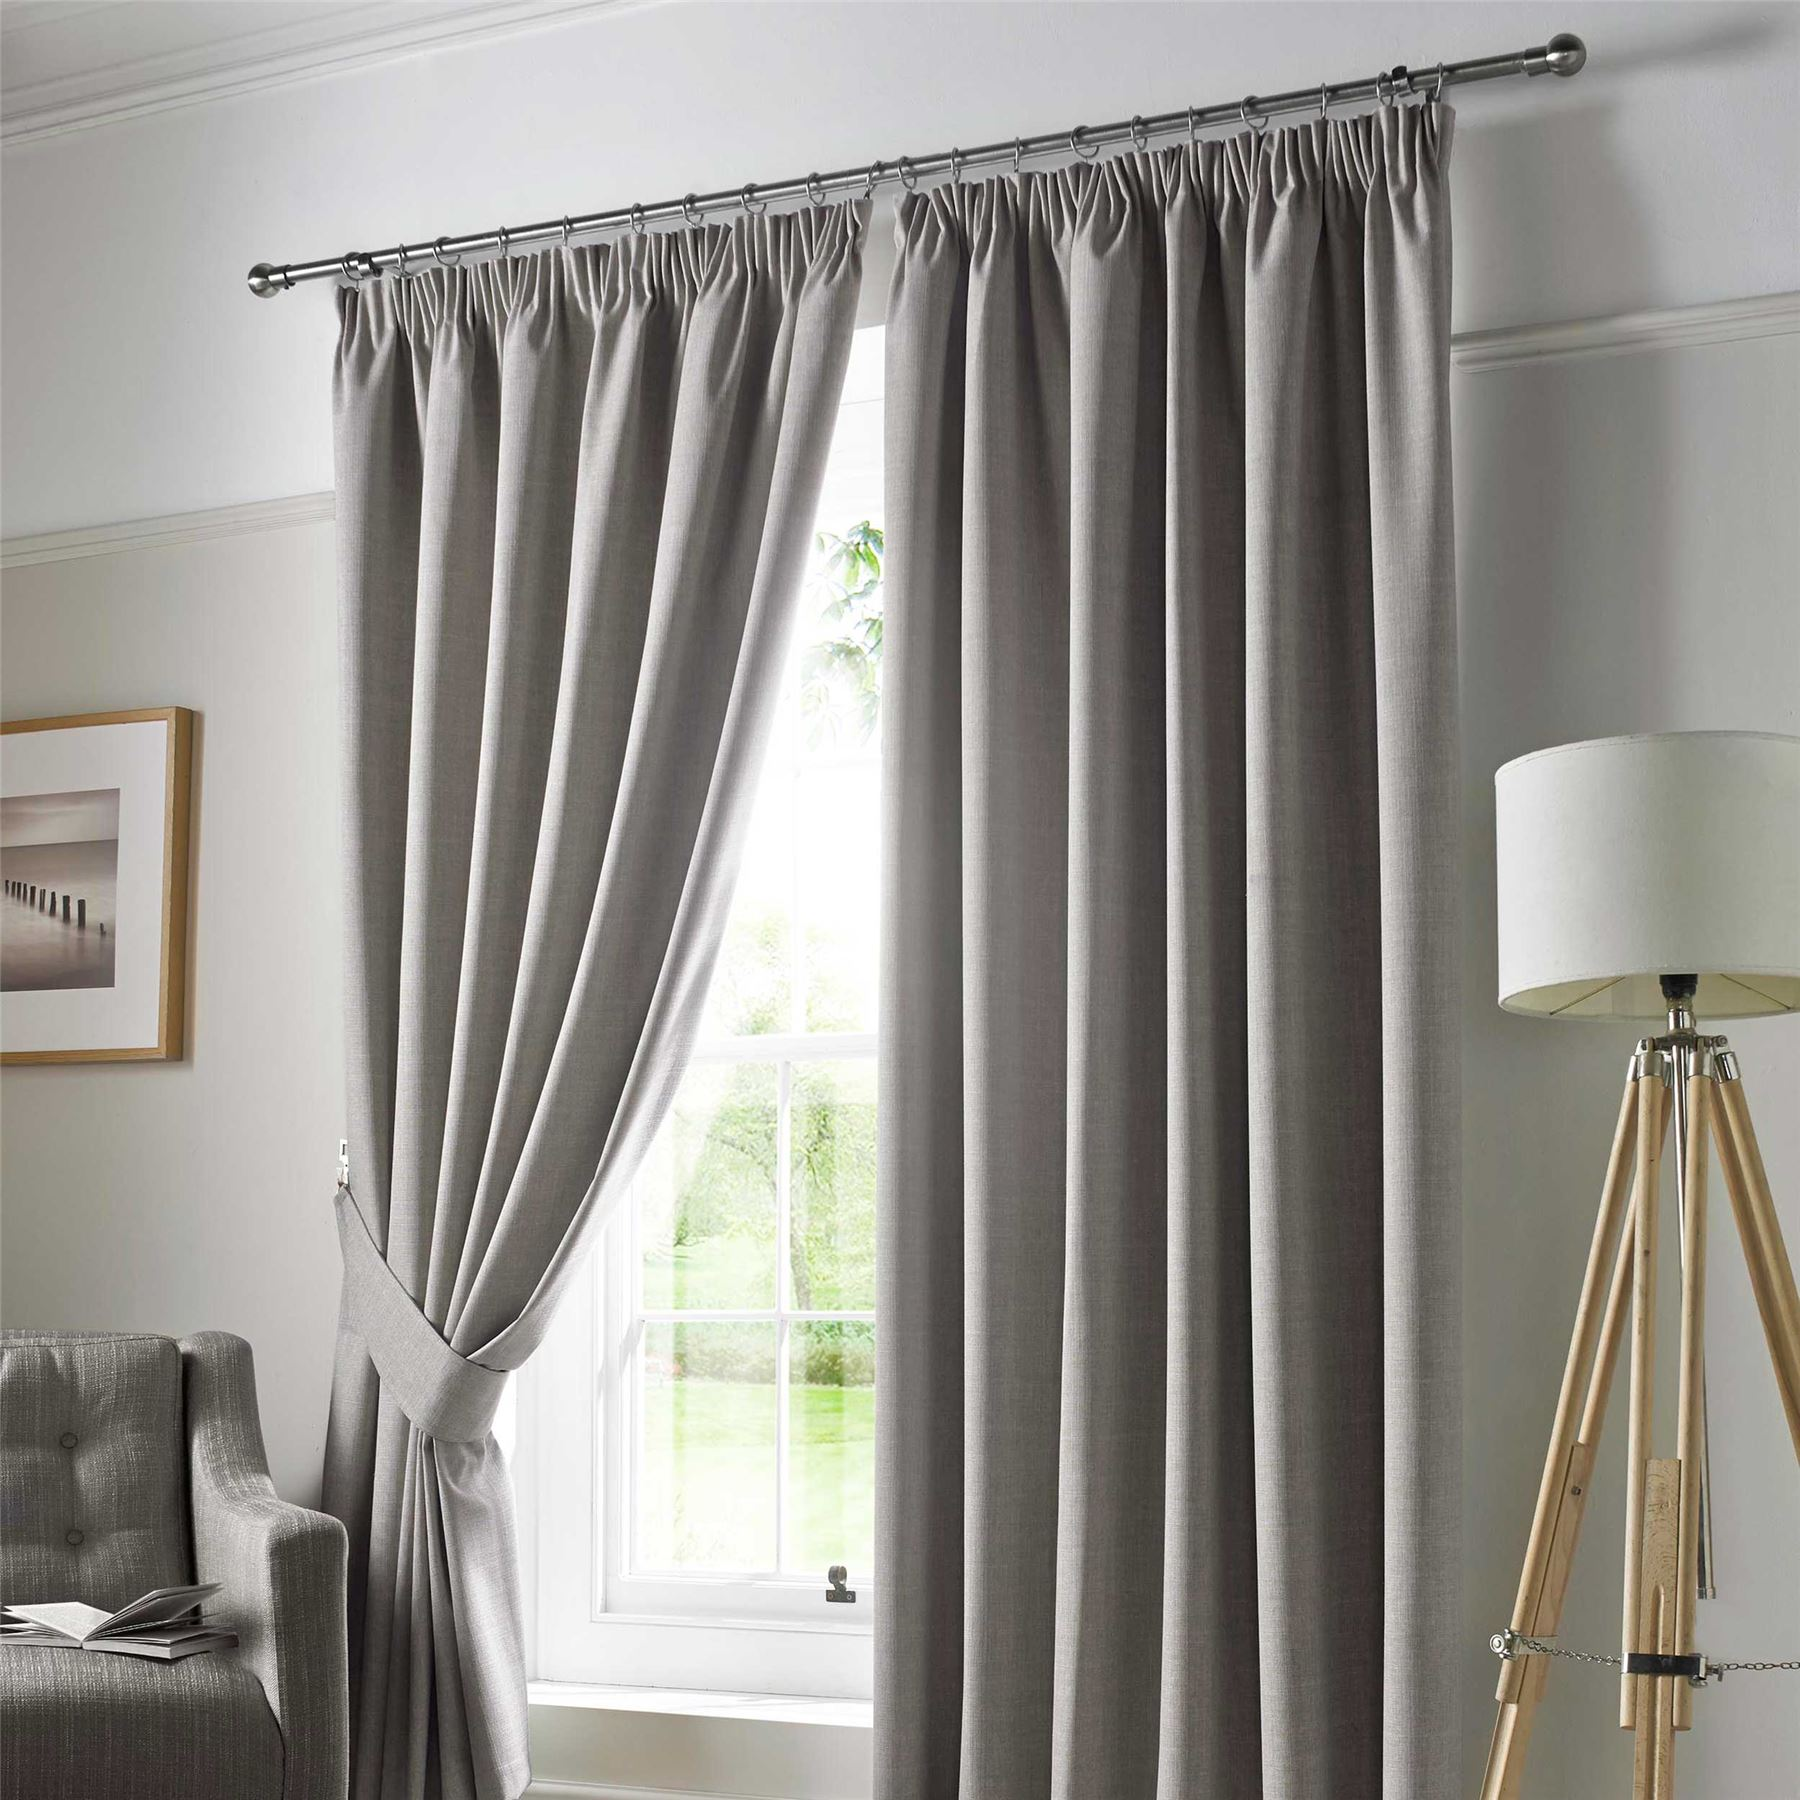 Blue Gray Blackout Curtains: Pencil Pleat Blackout Ready Made Curtains Pair Fully Lined